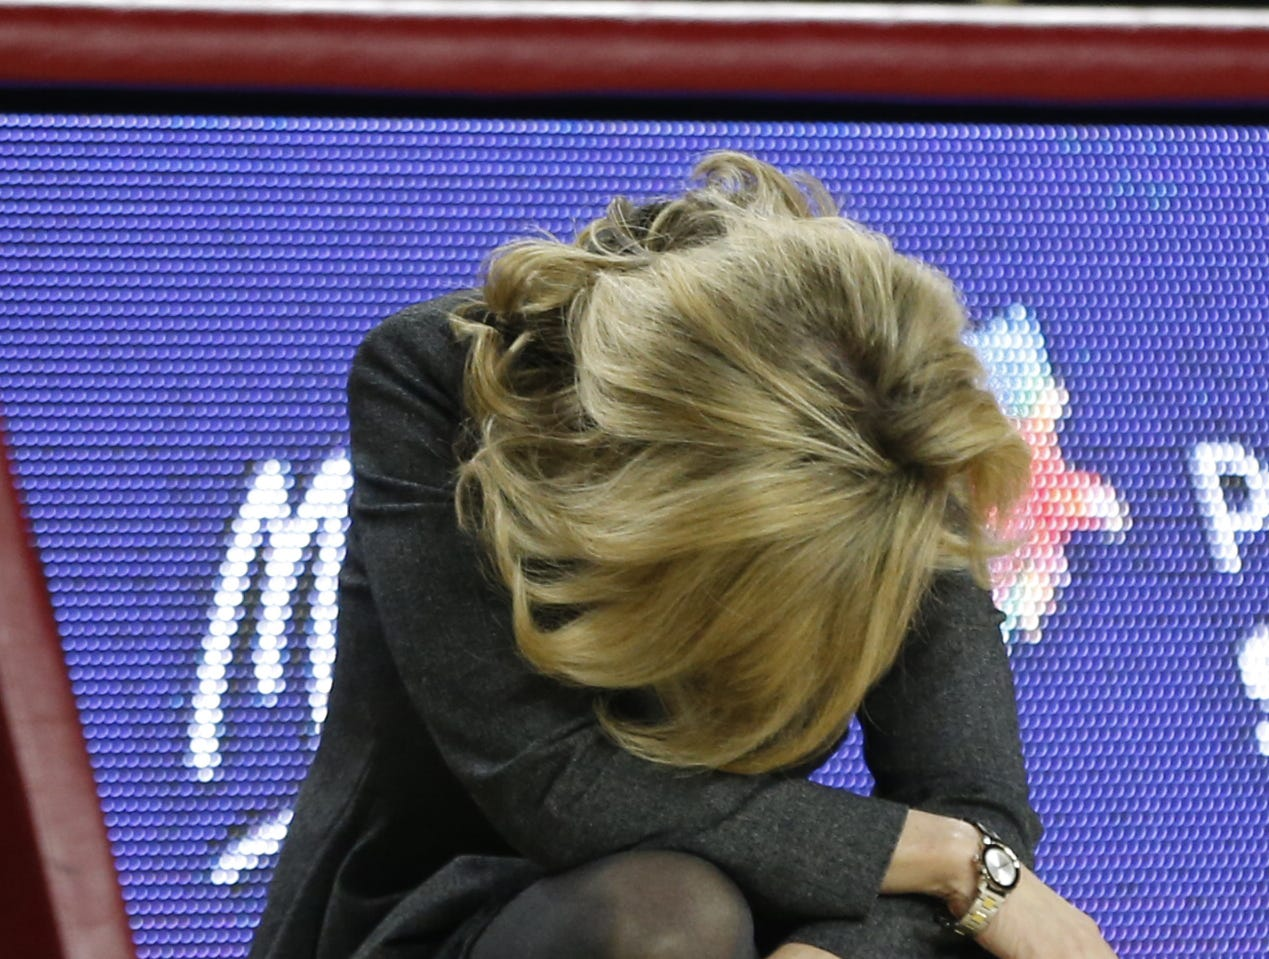 ASU's head coach Charli Turner Thorne hangs her head after a turnover against Oregon State during the second half at Wells Fargo Arena in Tempe, Ariz. on March 1, 2019.